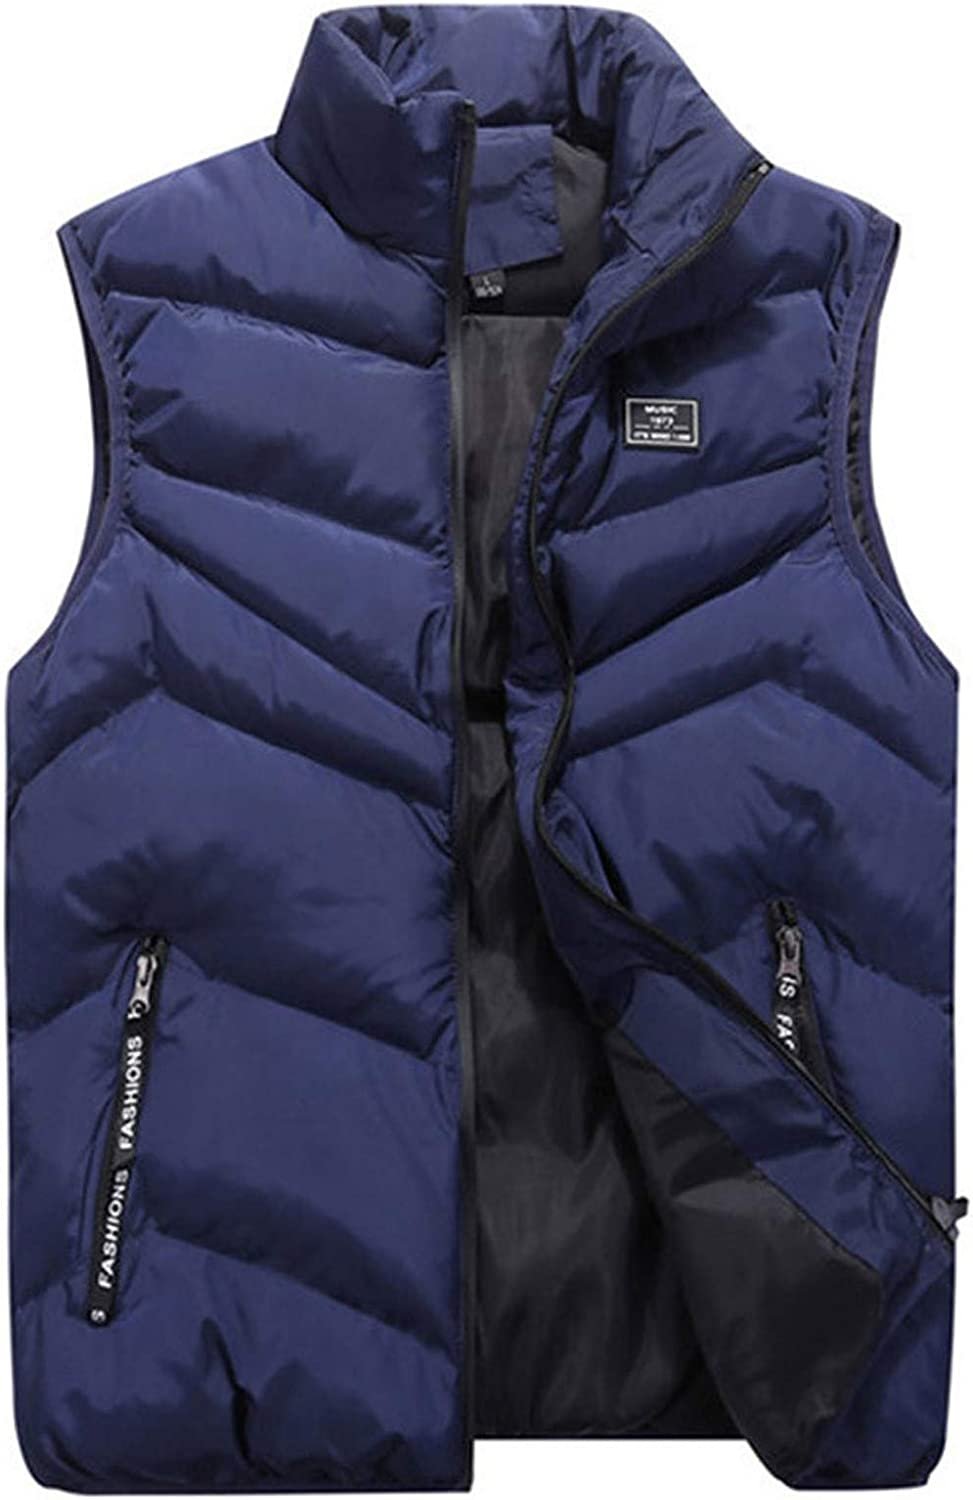 WUAI-Men Down Vest Thicken Classic Sleeveless Stand Collar Outdoor Side Pockets Padded Quilted Puffer Jackets Outwear